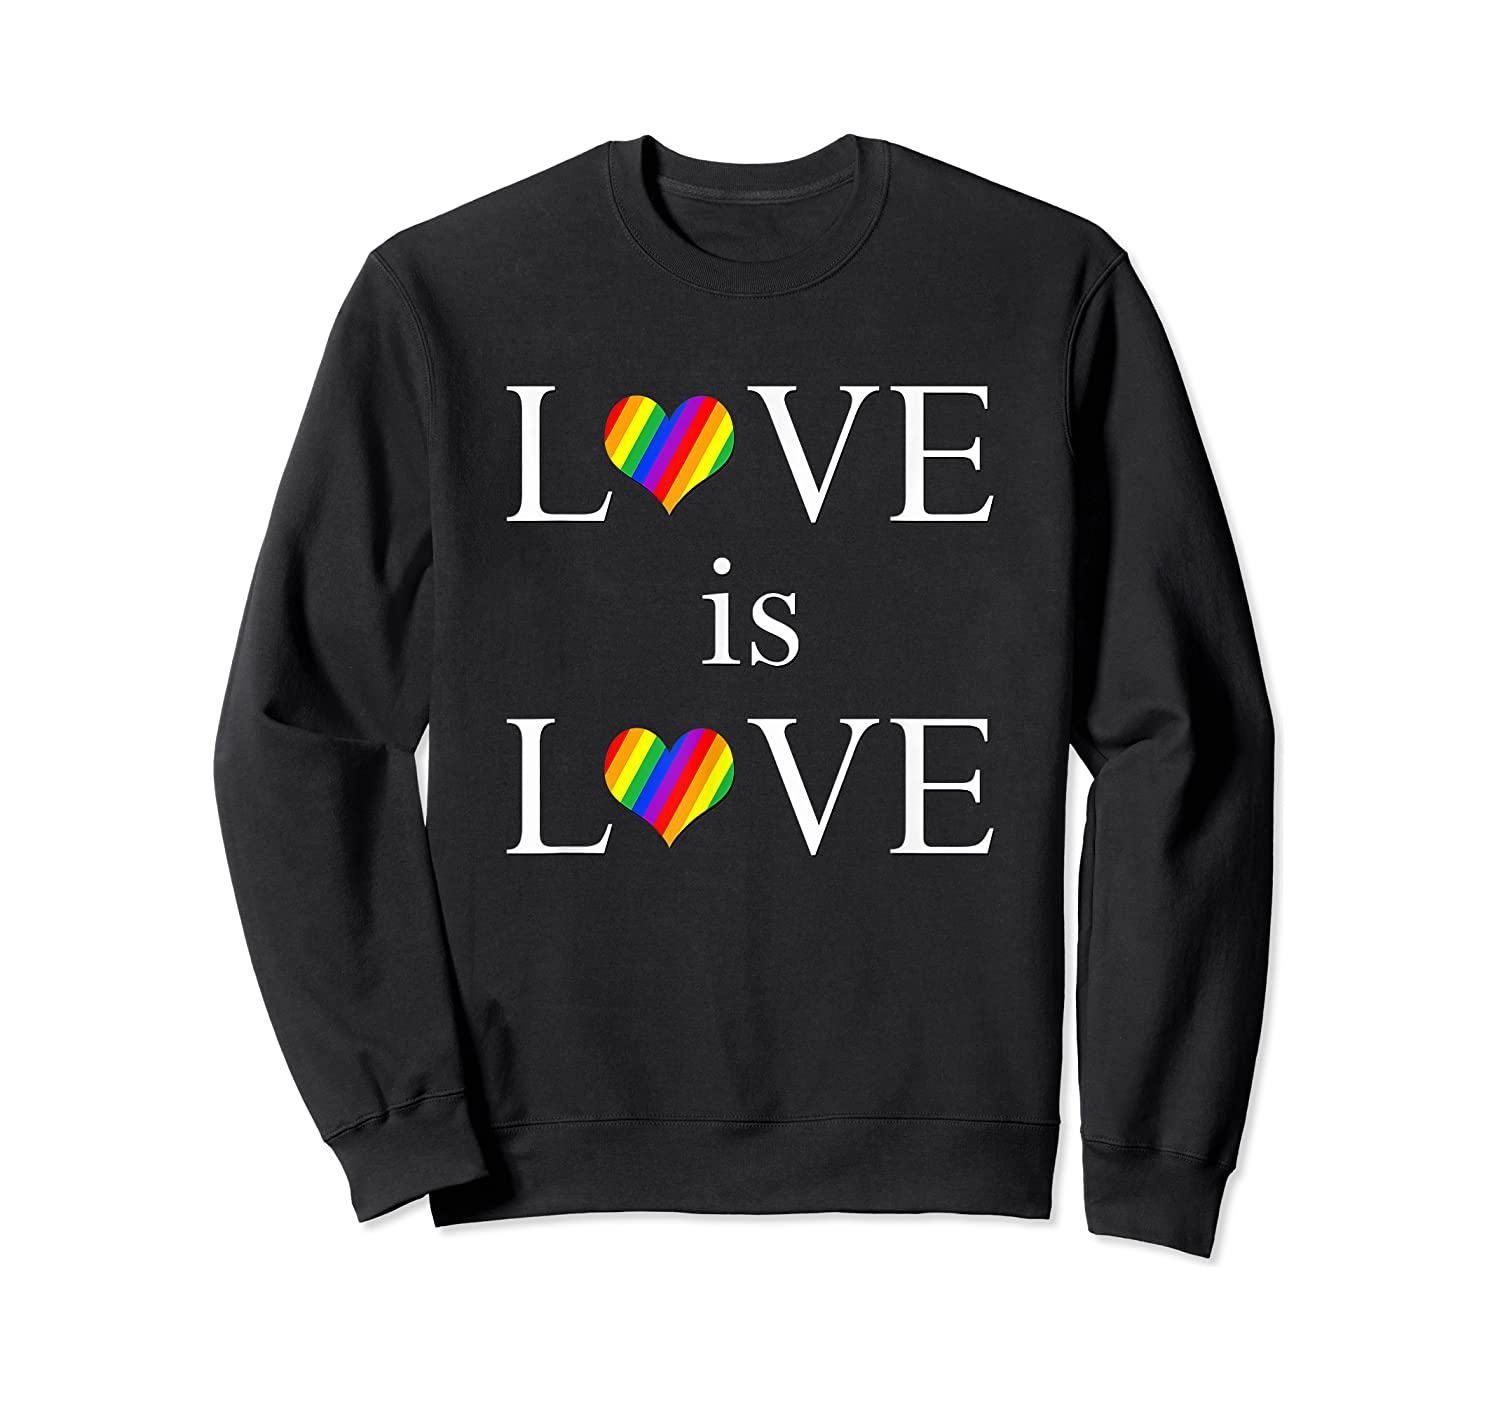 Love Is Love Lgbt Rights Shirts Crewneck Sweater